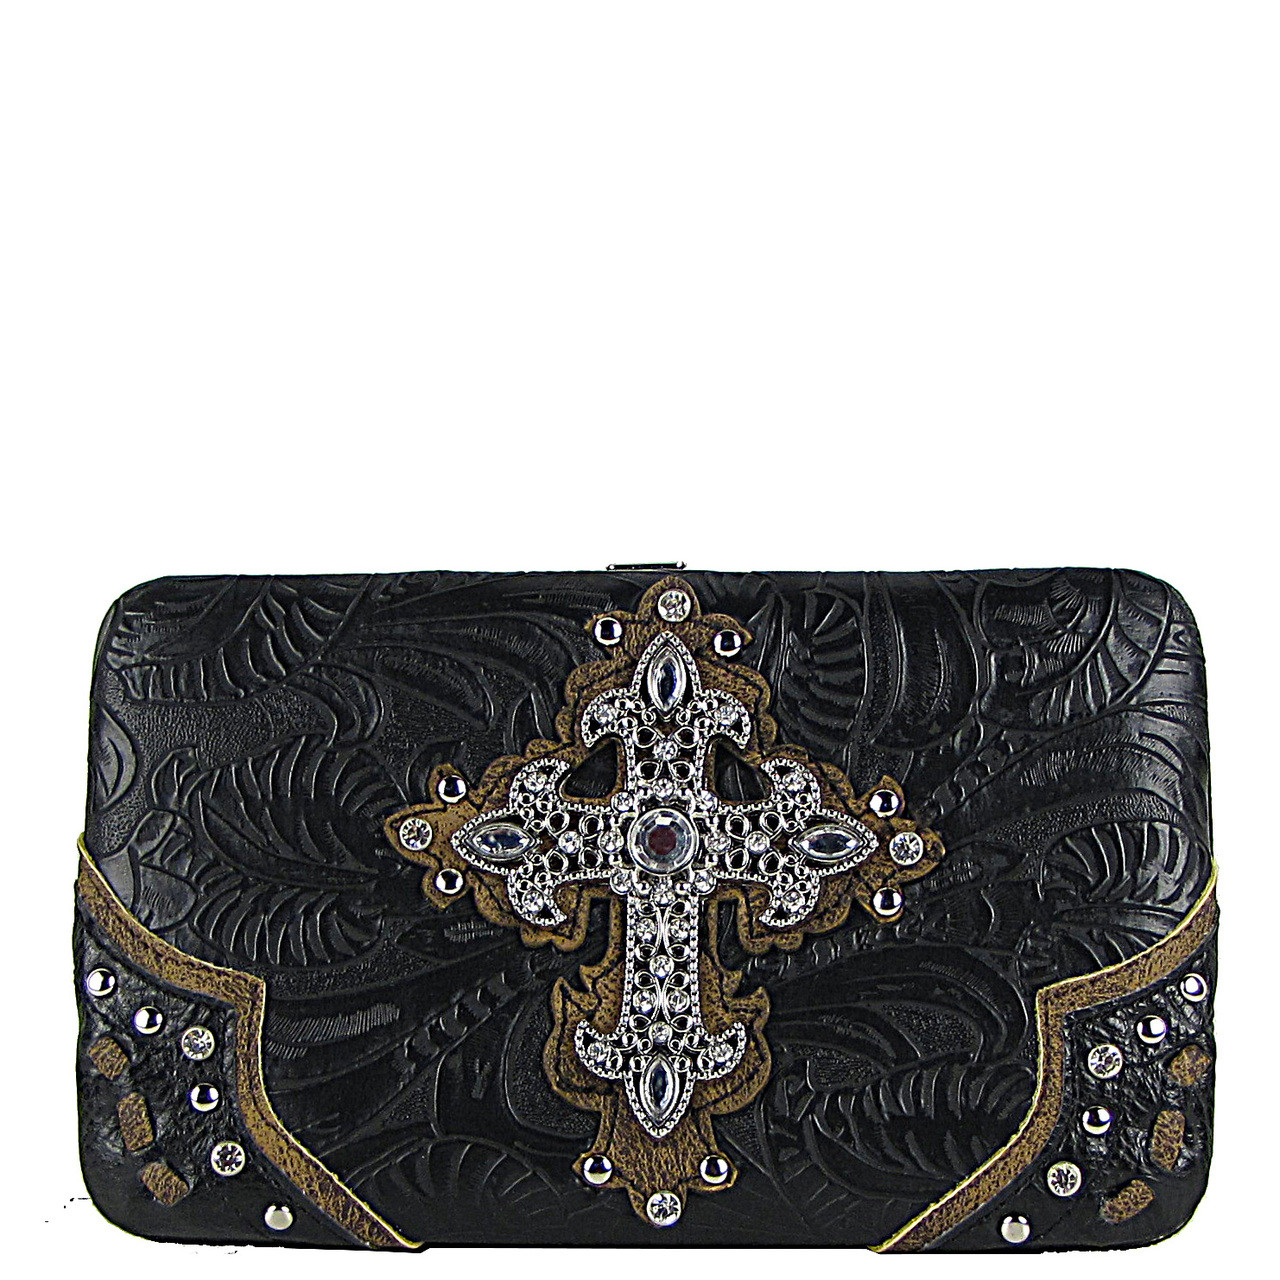 BLACK TOOLED WESTERN RHINESTONE CROSS LOOK FLAT THICK WALLET FW2-0438BLK